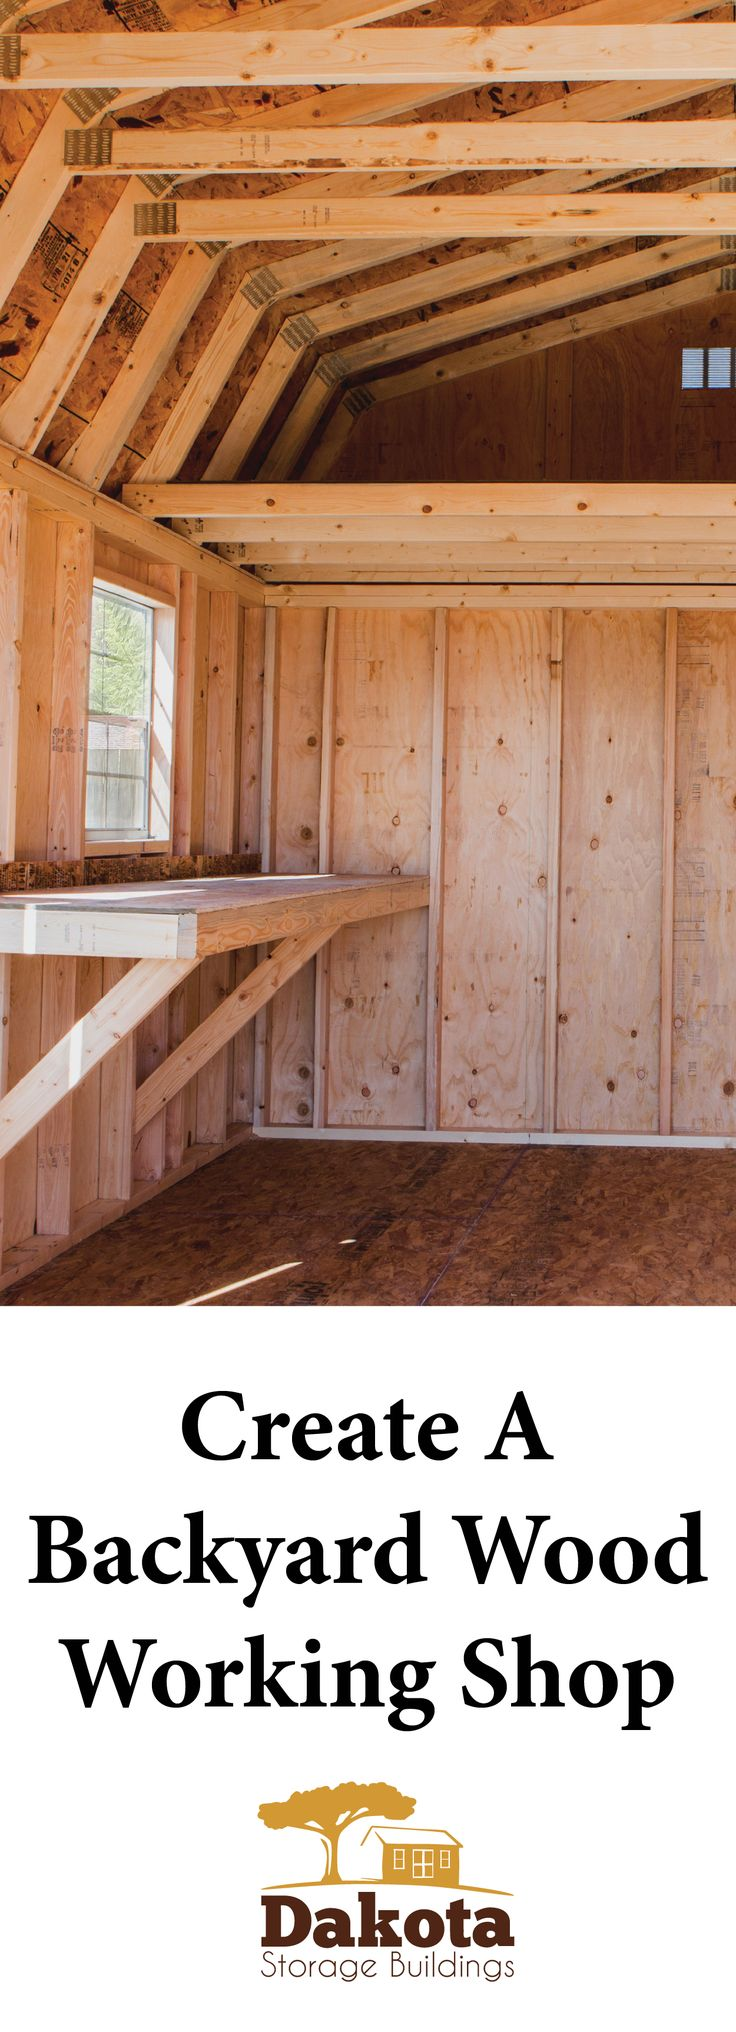 If you don't already have a wood shop, consider one of our three storage buildings - storage, porch, and garage. Each would make an excellent shop. More: http://www.dakotastorage.com/blog/ideas-for-creating-wood-workshop